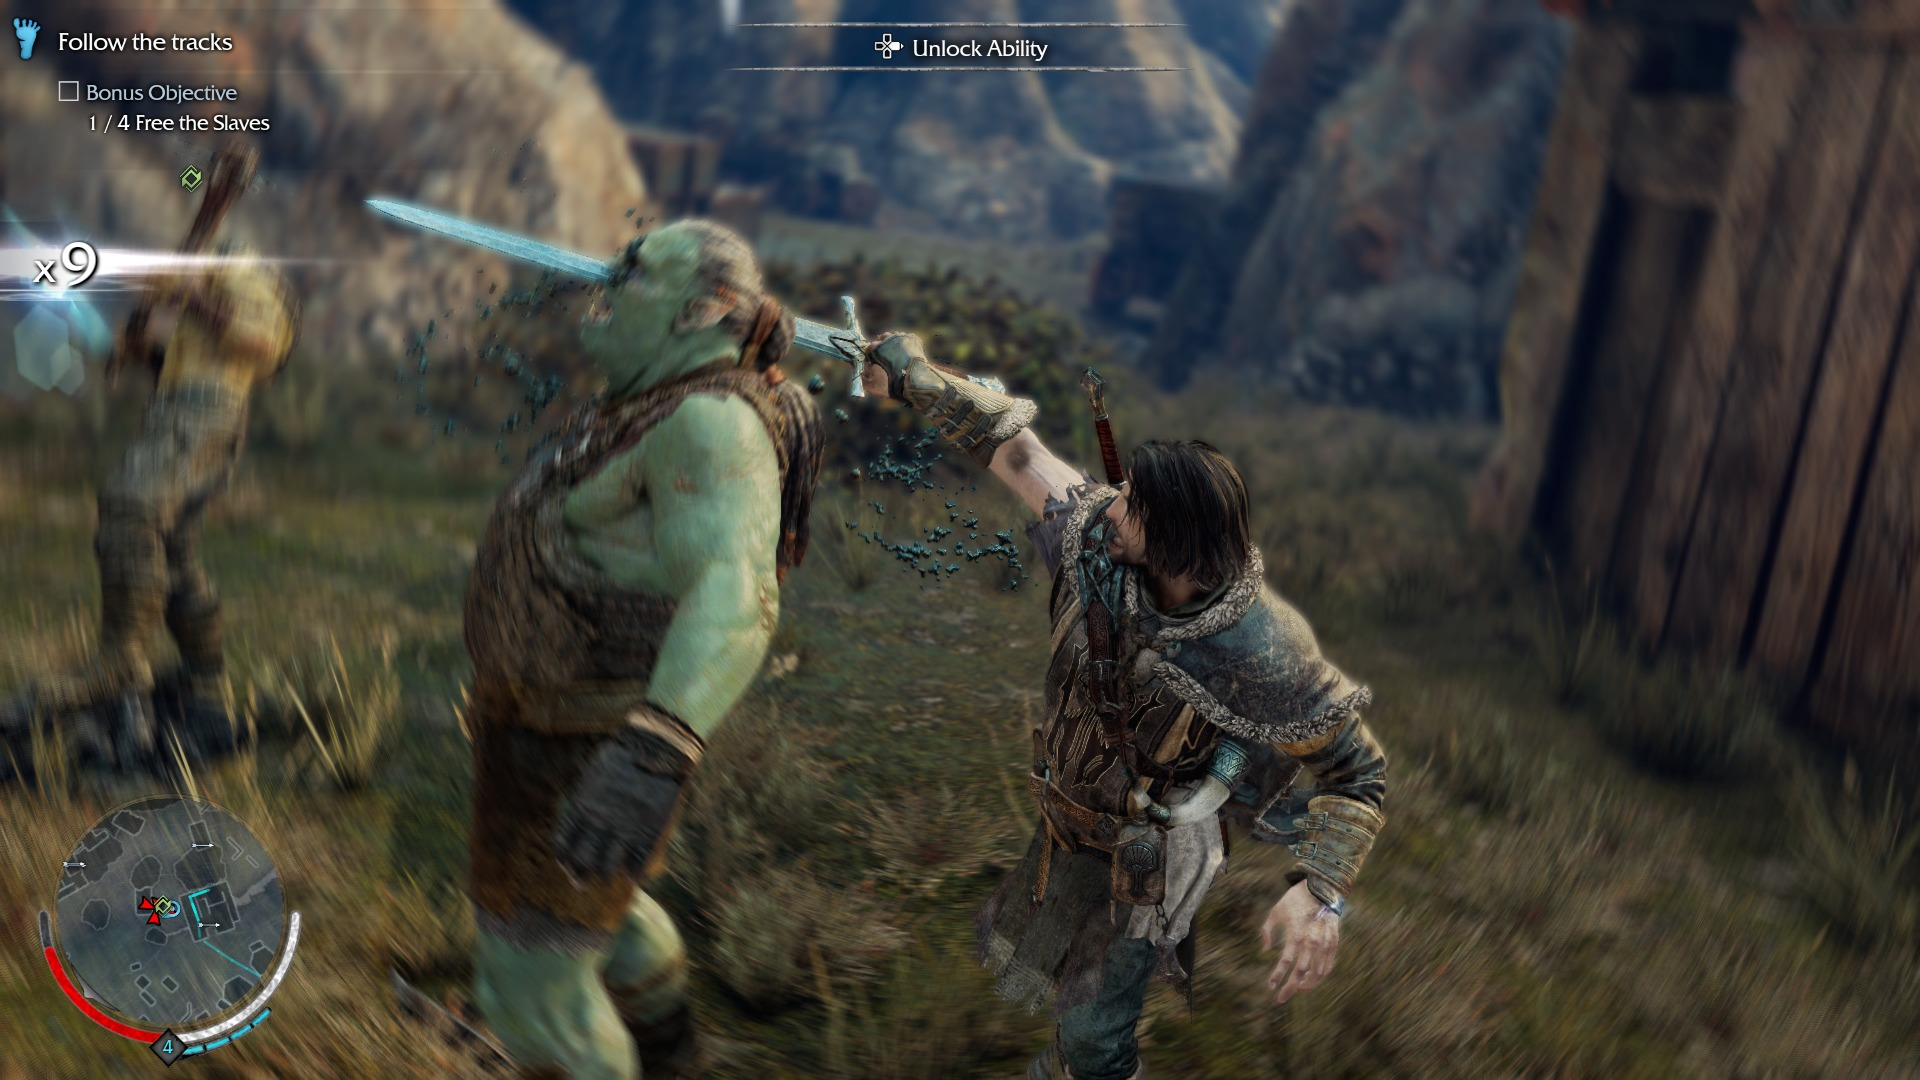 http://i2.wp.com/gearnuke.com/wp-content/uploads/2014/09/shadow-of-mordor-ps4-1.jpg